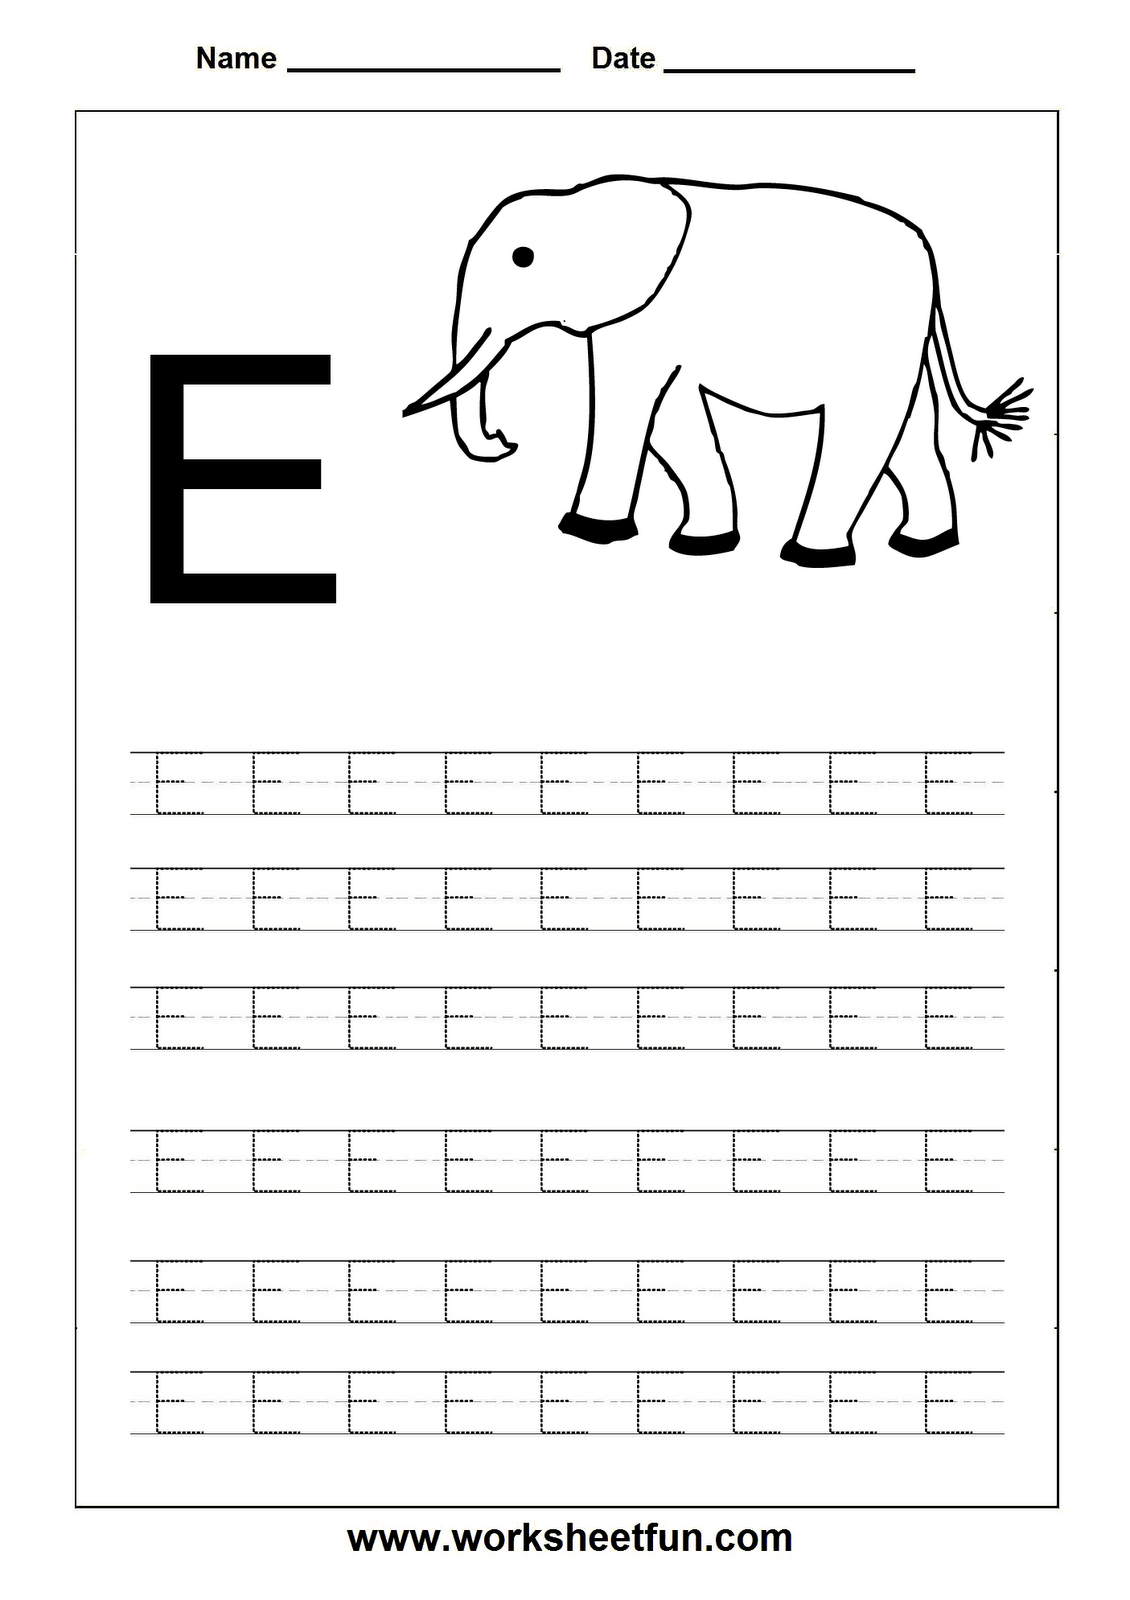 Free Printable Worksheets - Contents | Letter E Worksheets regarding Letter E Worksheets For Pre K